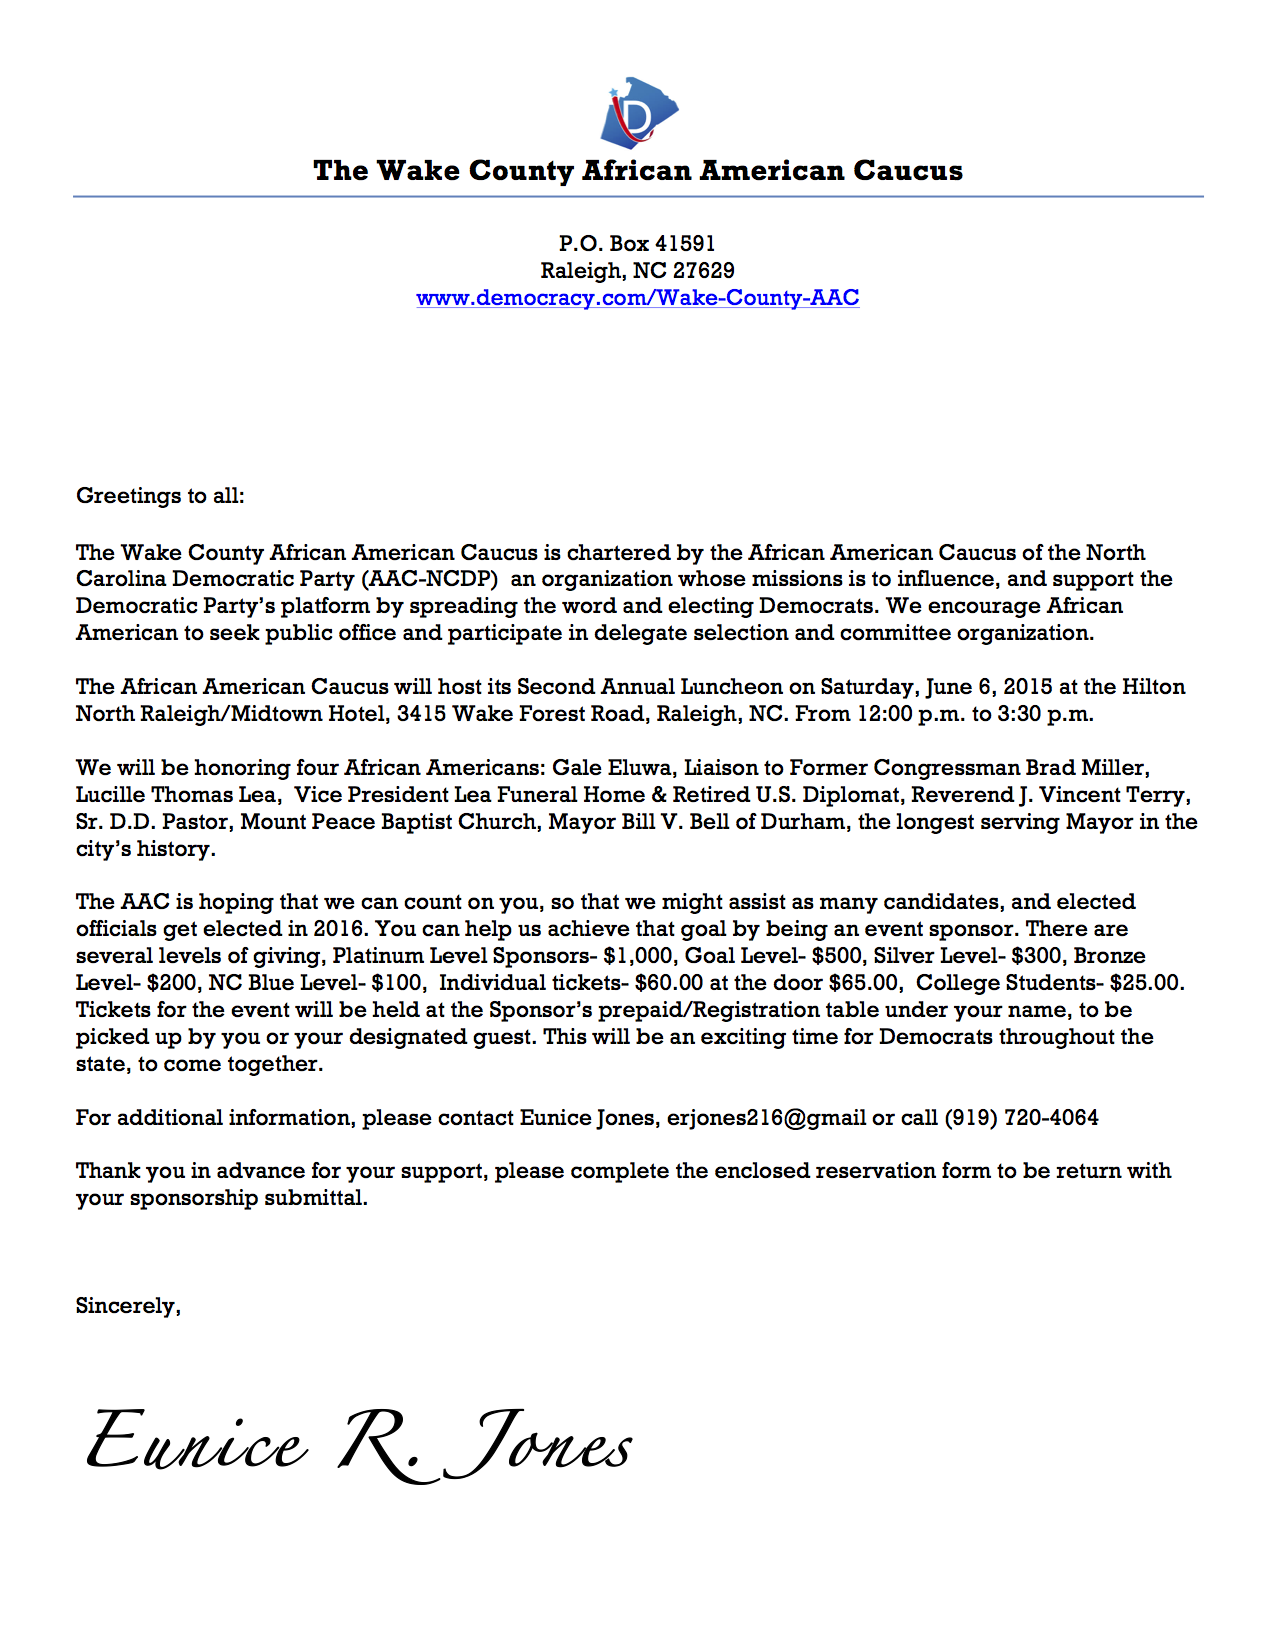 The_Wake_County_African_American_Caucus-Letter-1_copy.png